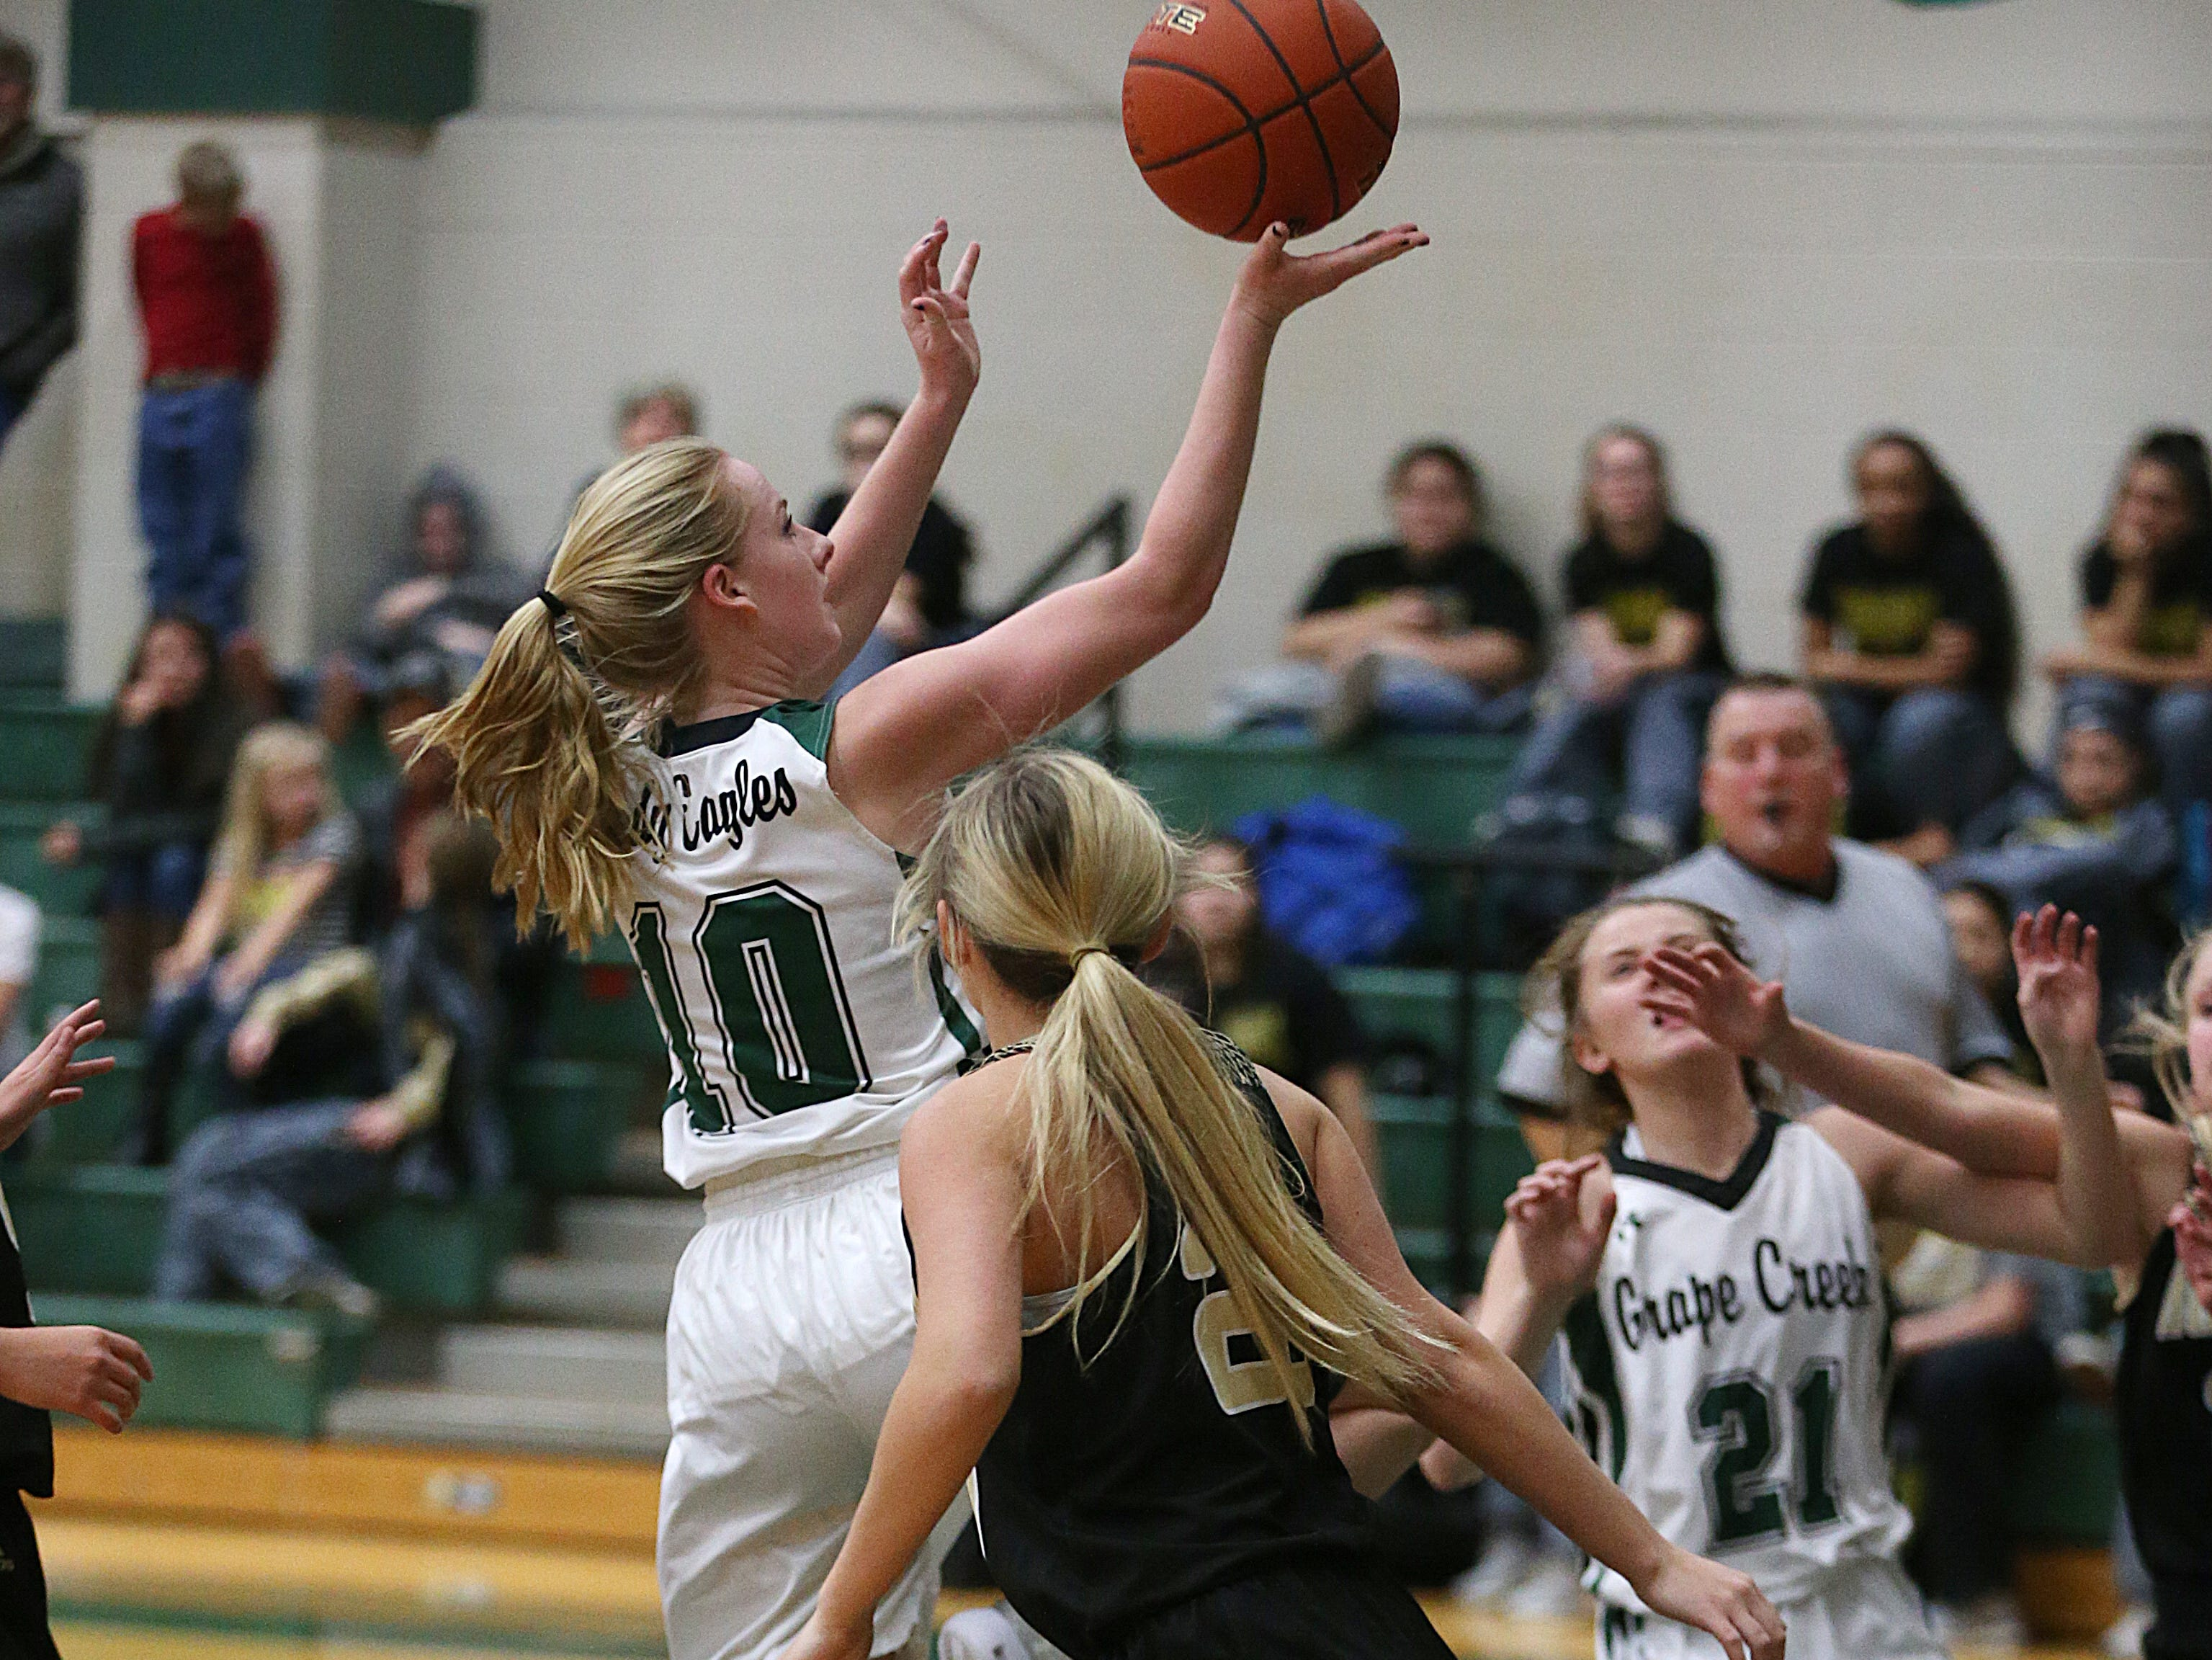 Grape Creek's Kyla Walker (#10) shoots for a basket Friday, Dec. 14, 2018 during their game against Brady in Grape Creek. Brady won 48 to 28.